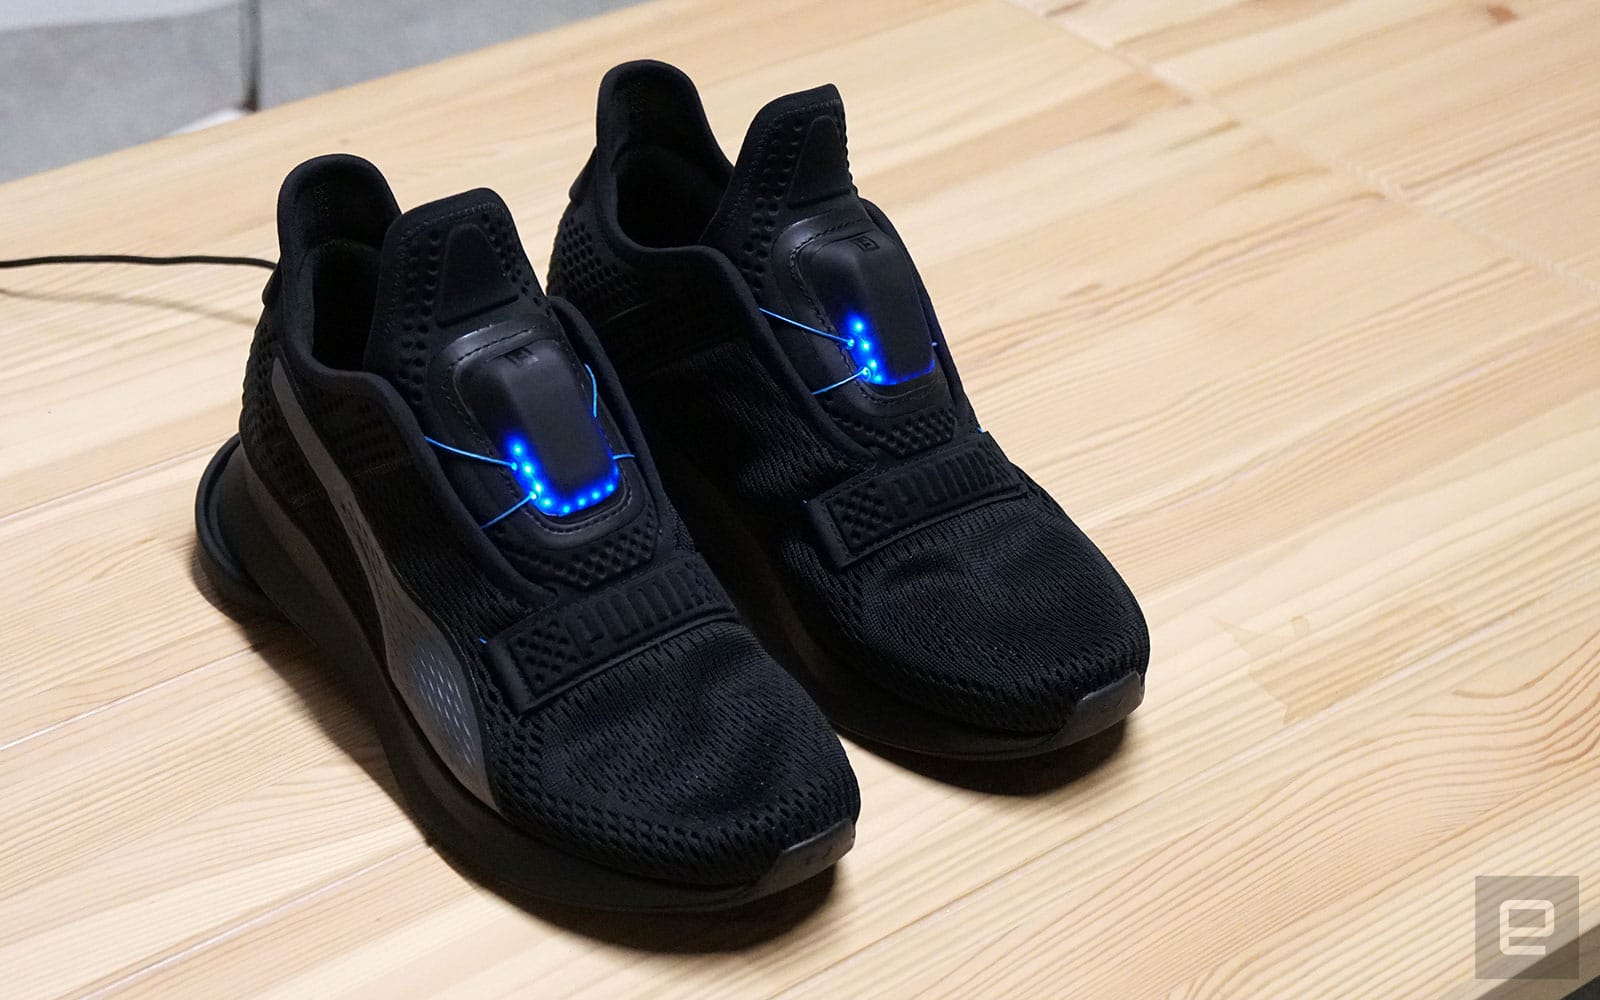 Puma Fi self-lacing shoes